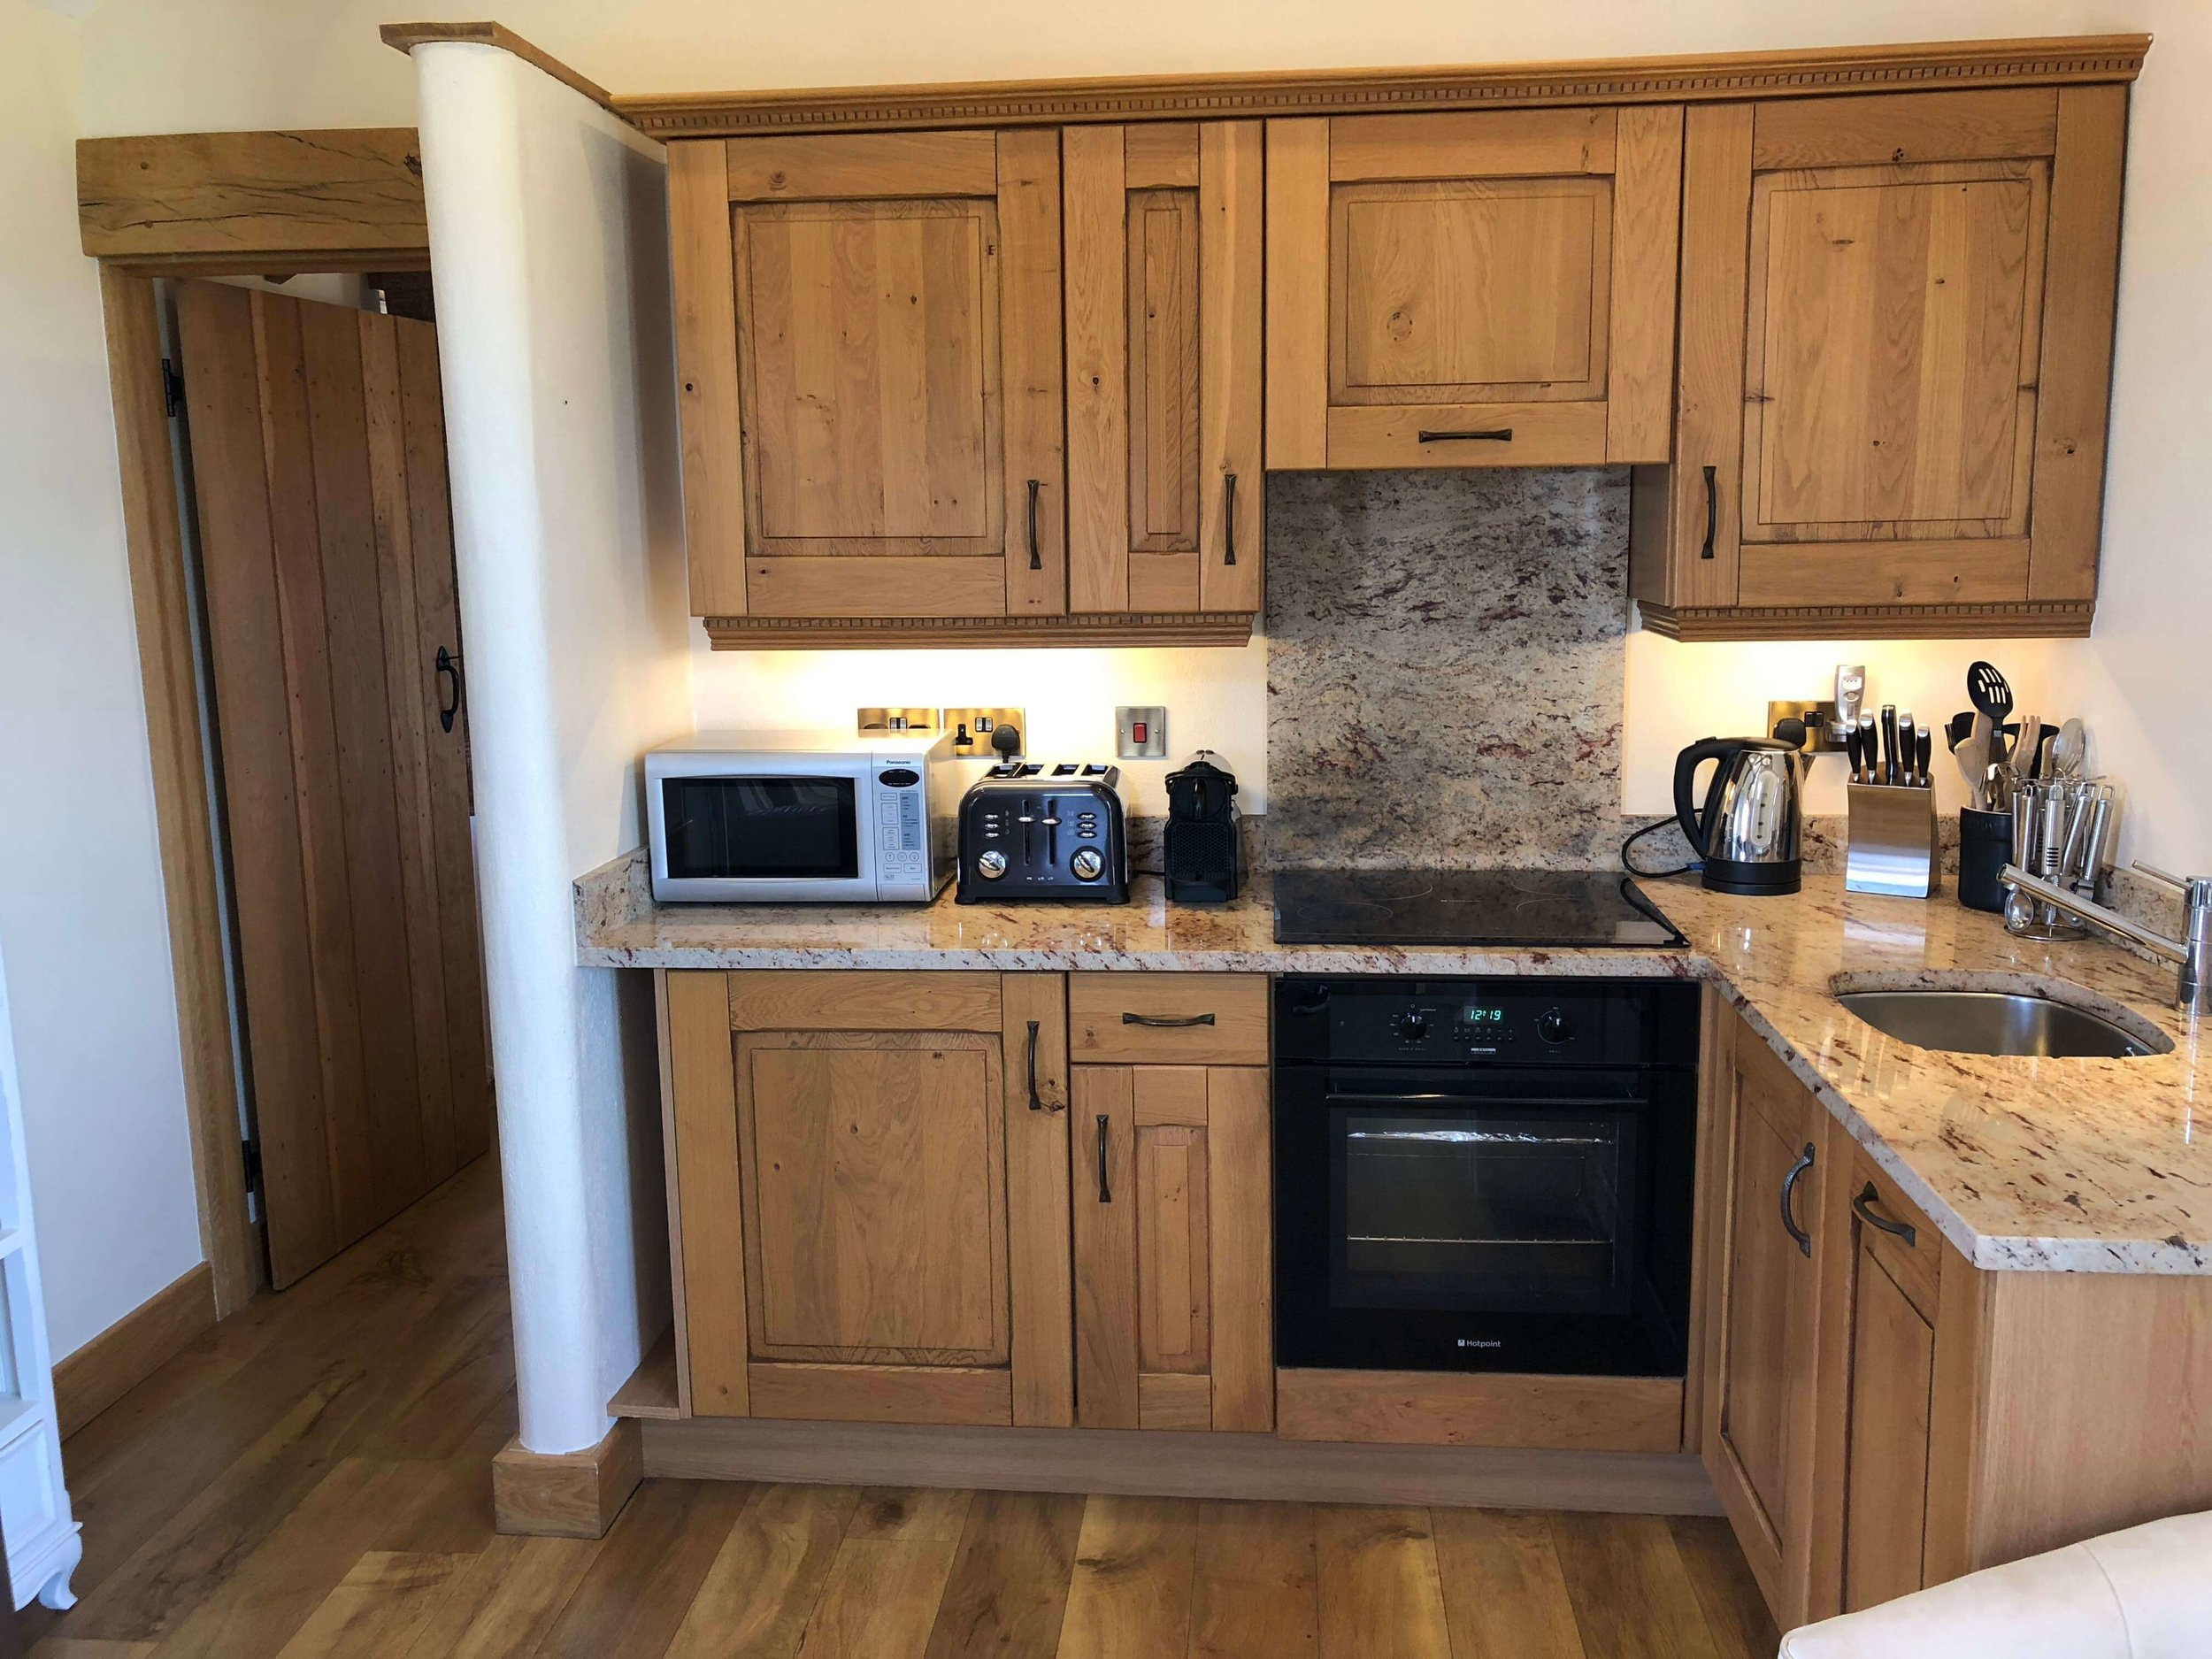 Compact fully equipped kitchen with granite worktops